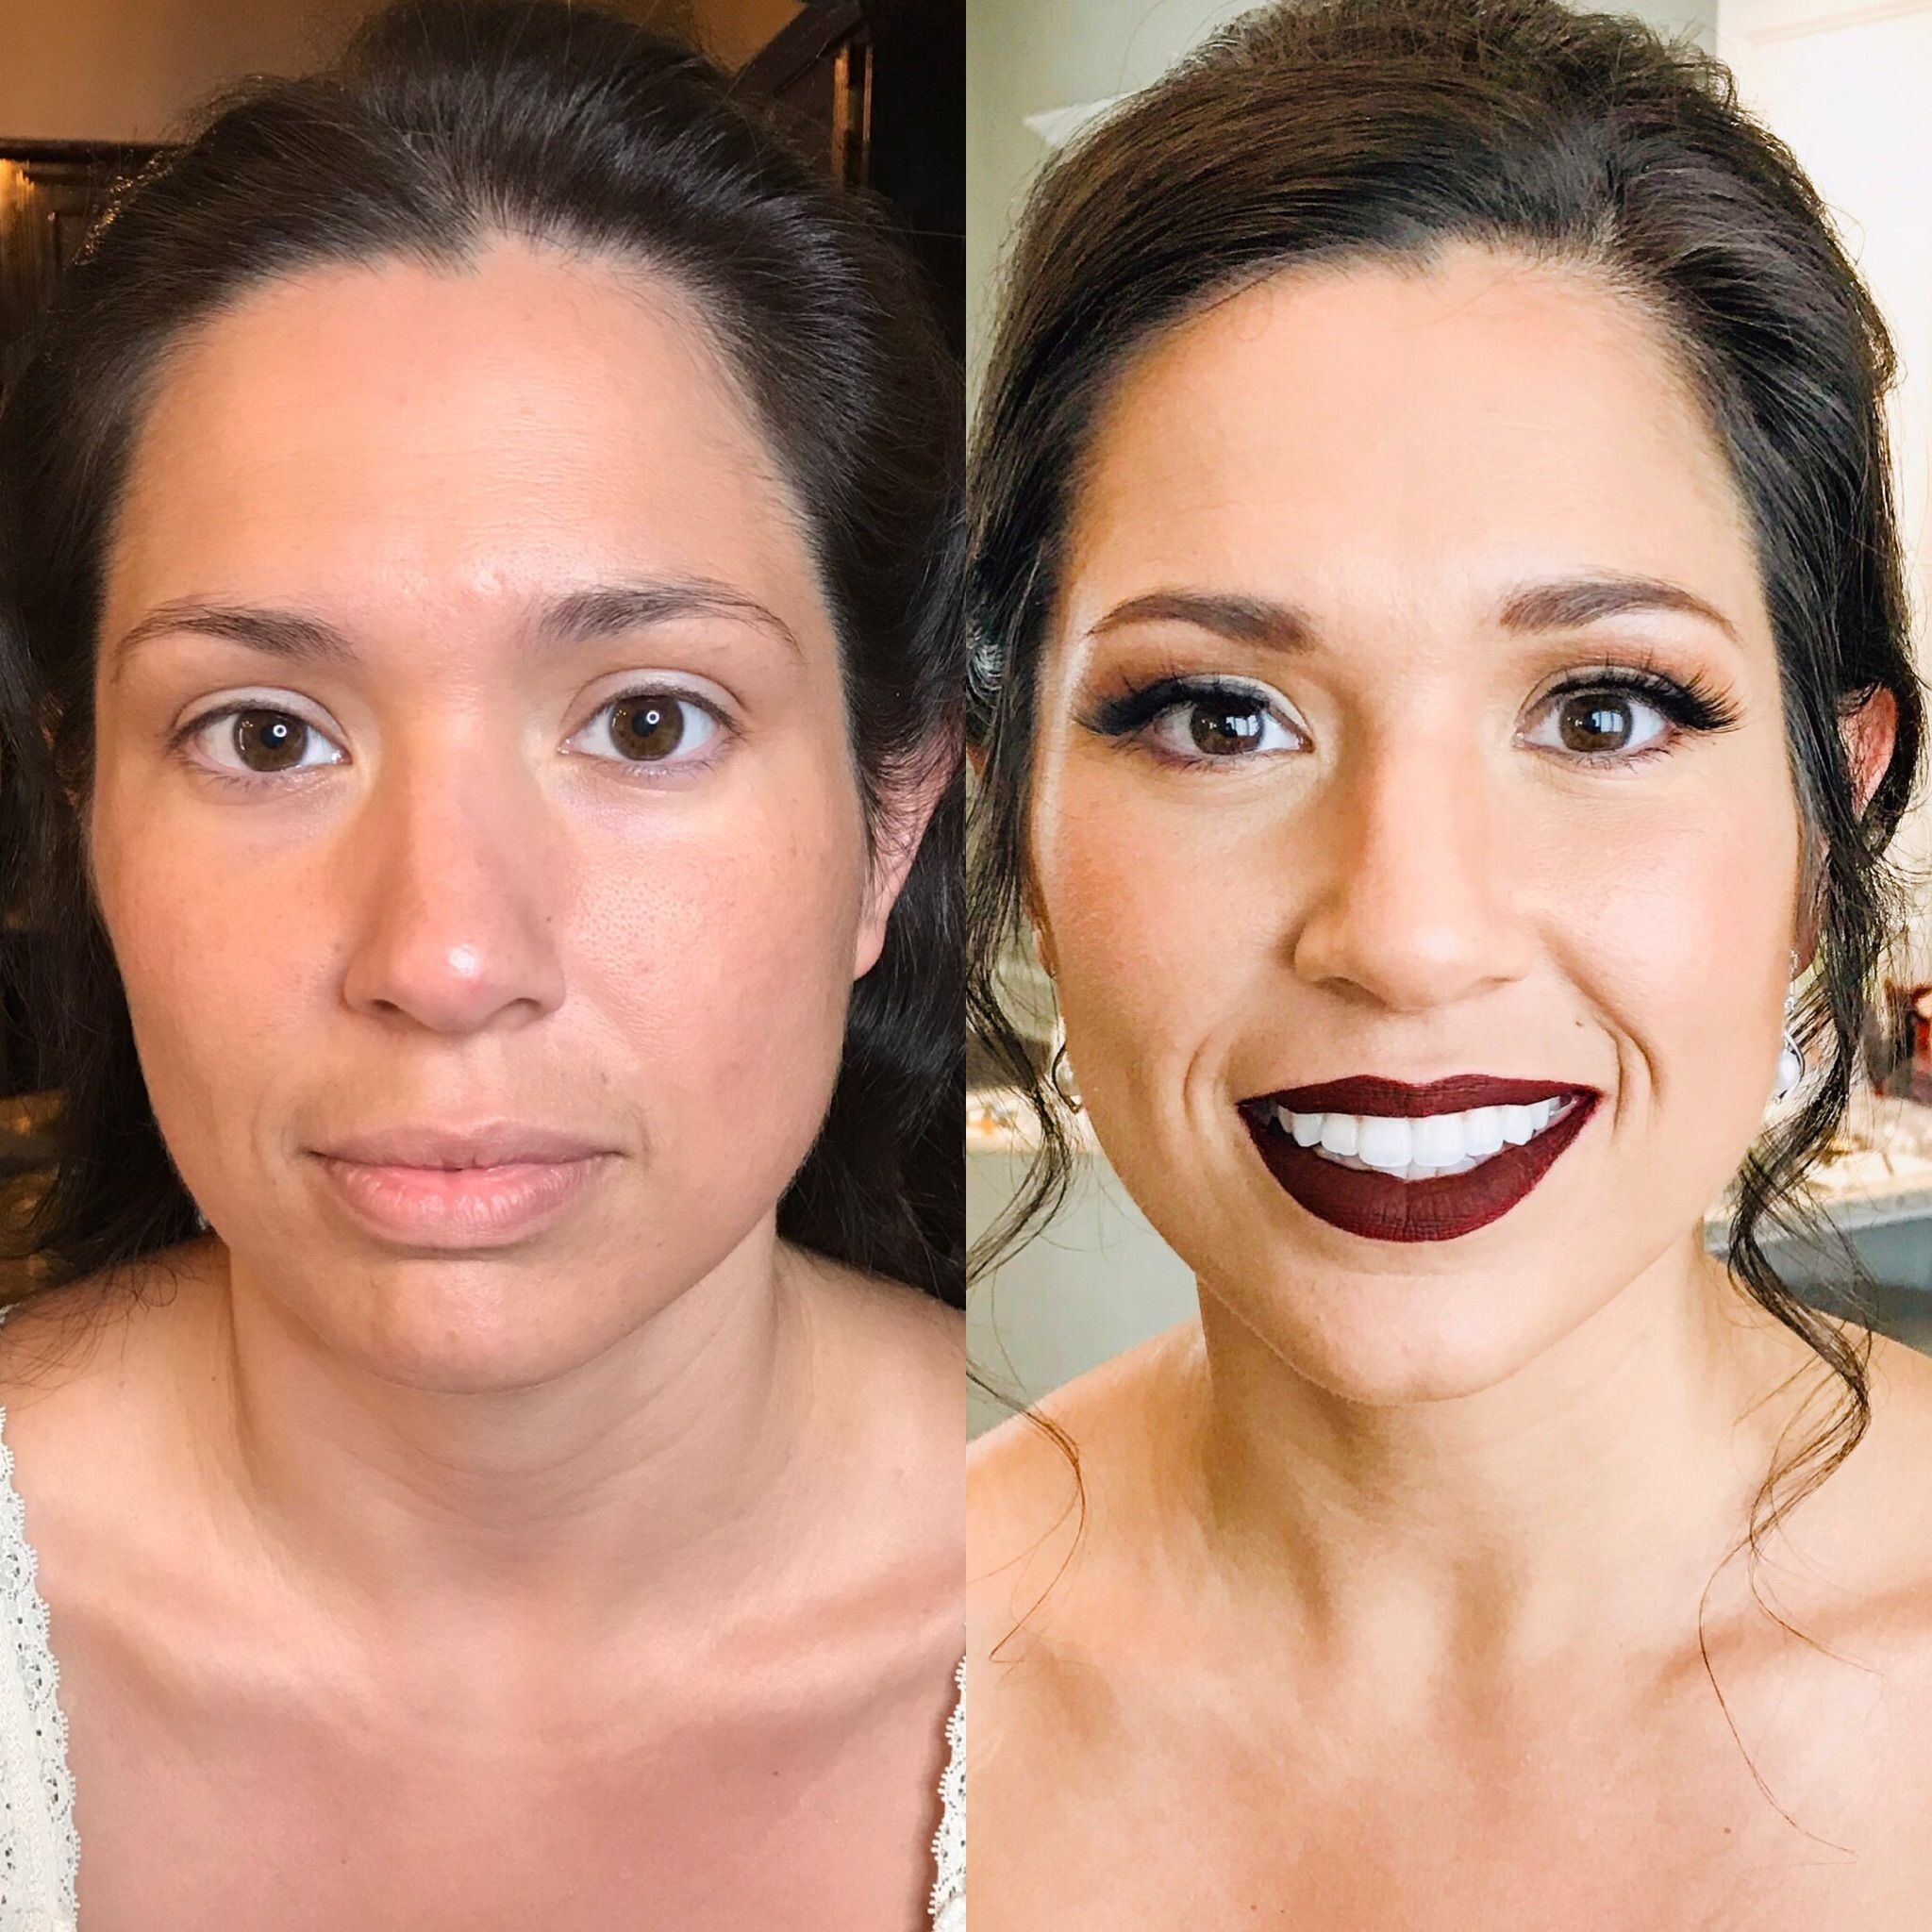 Slay Your Bridal Trial And Get What You Want In 2020 Bridal Trial Wedding Hair And Makeup Makeup Trial